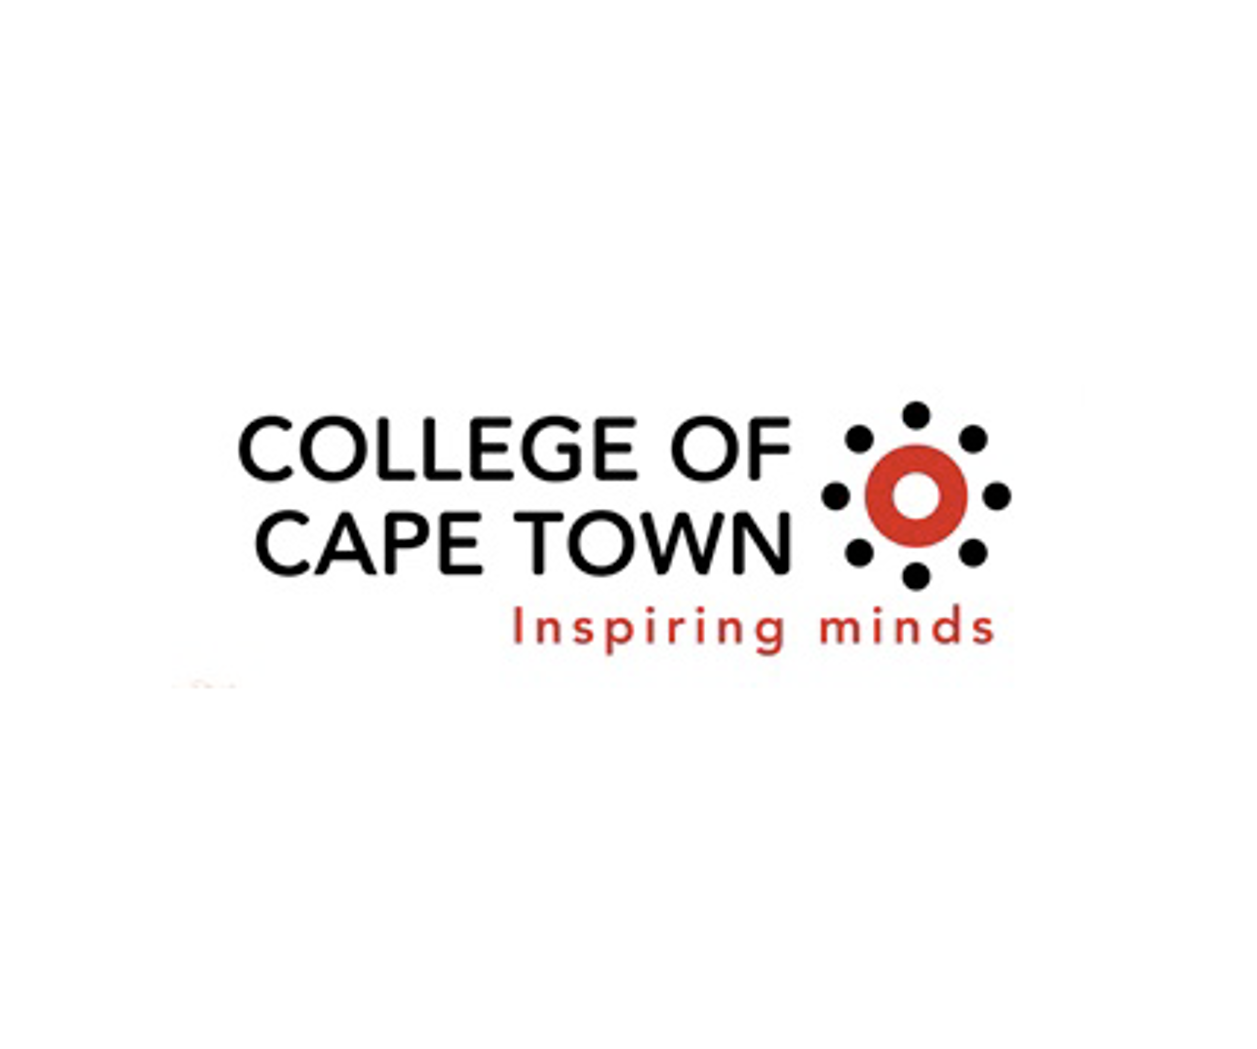 DLK had a good understanding of our needs but more importantly, along the way, developed a strong relationship with the college and the FET sector in the Western Cape. We are really thrilled to be associated with a company of such caliber and have made a strategic decision to keep the partnership going for the foreseeable future.